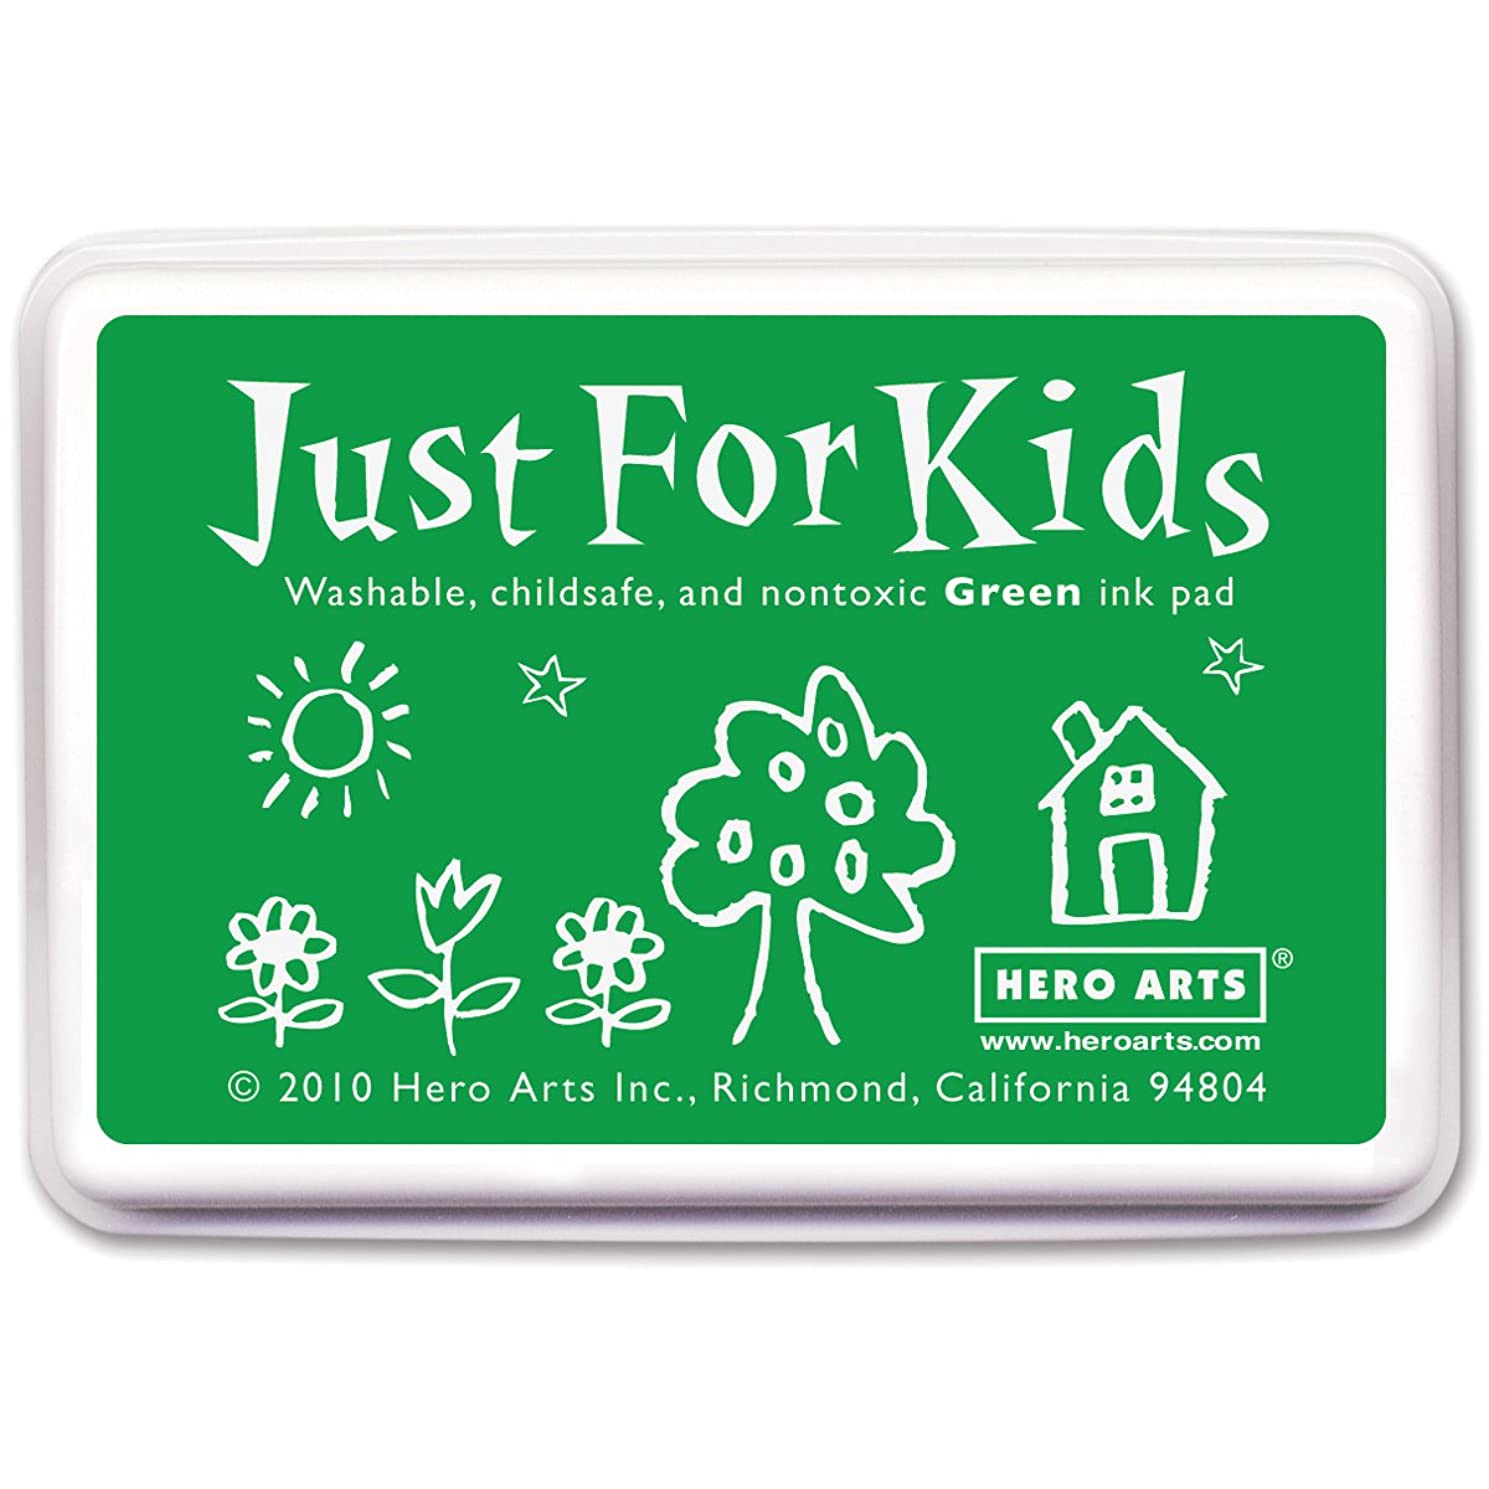 Hero Arts Just For Kids CS102 Washable Ink Pad for Rubber Stamps - Green